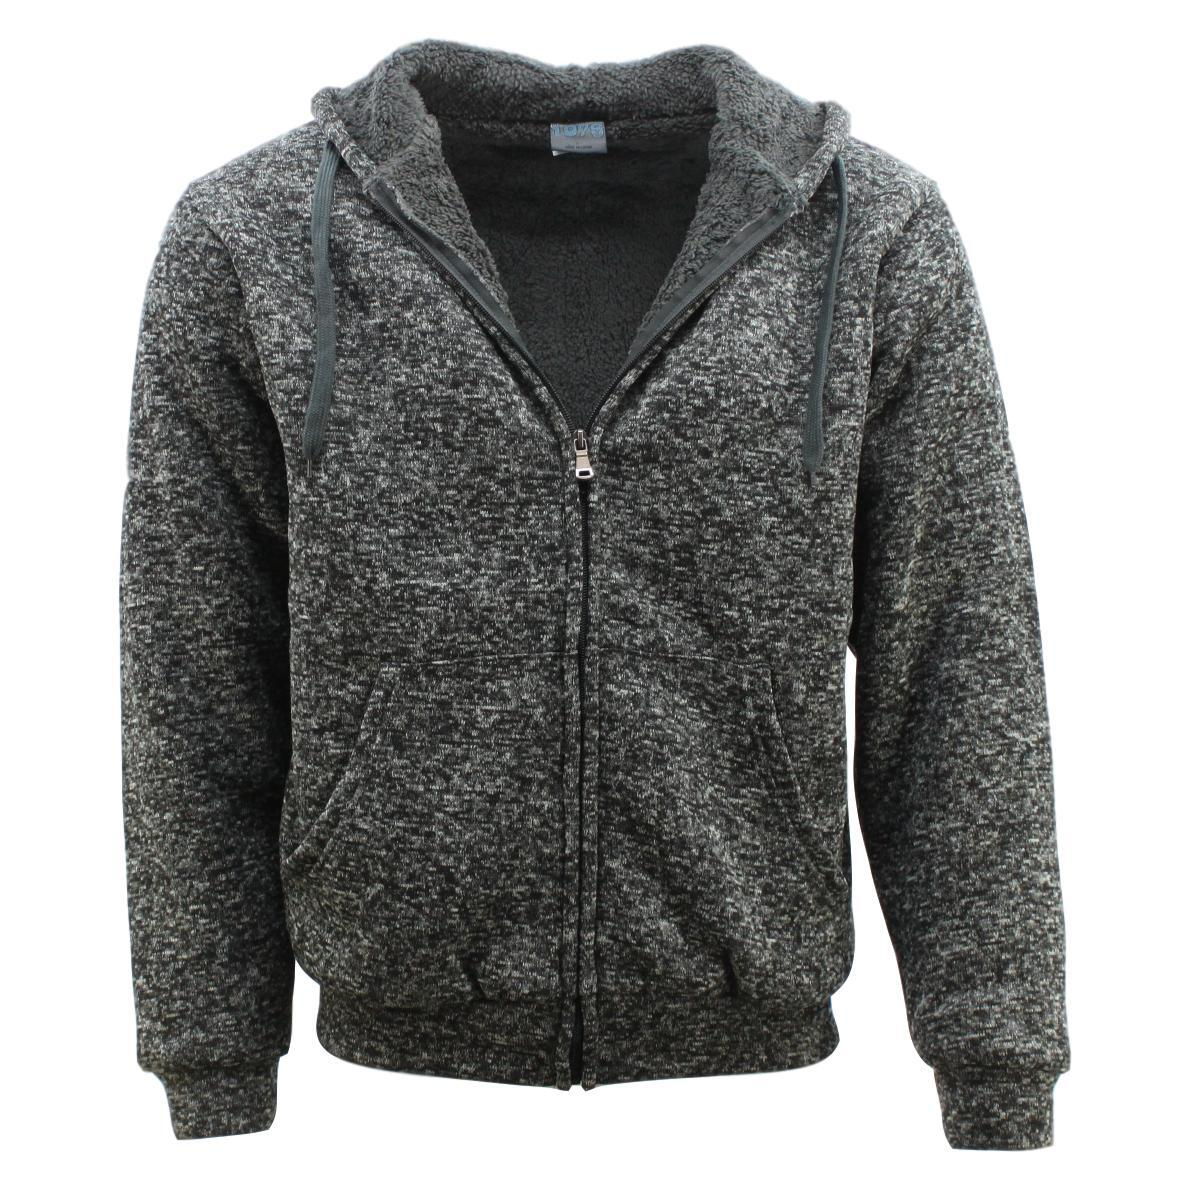 Winter-Mens-Womens-Unisex-Zip-Up-Hoodie-w-Sherpa-Fur-Thick-Hooded-Jacket-Jumper thumbnail 46